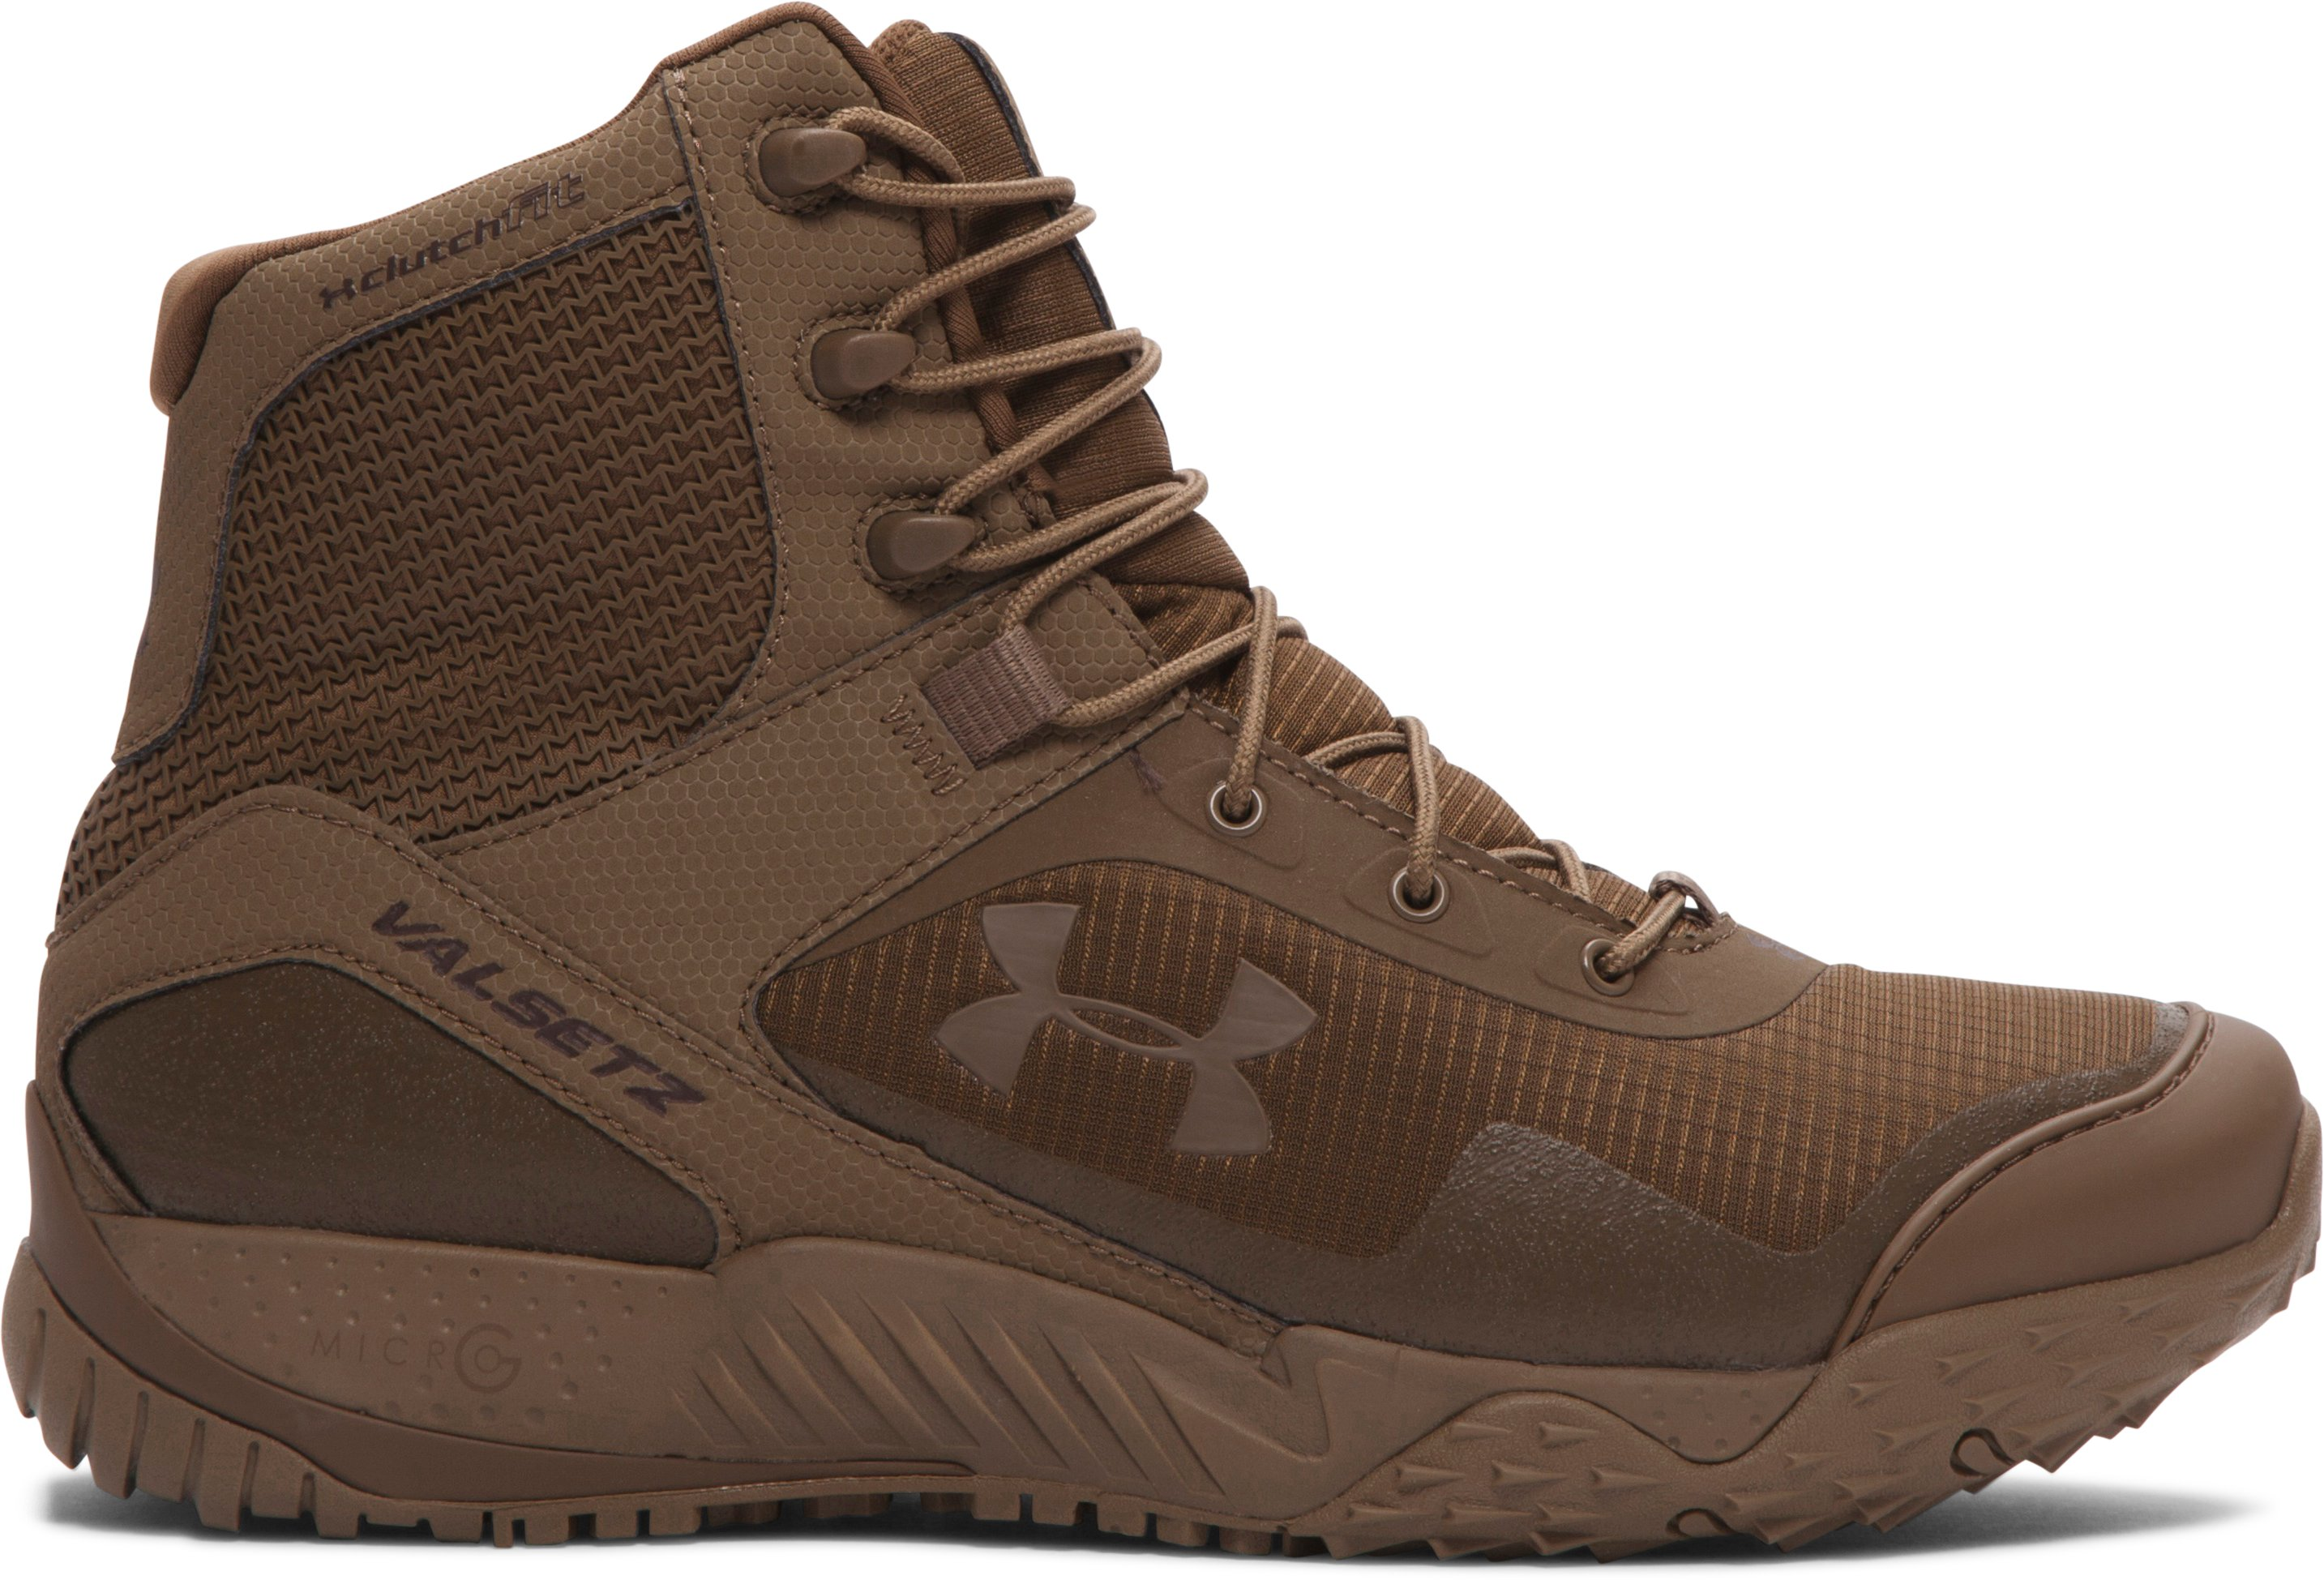 coyote brown boots Men's UA Valsetz RTS Tactical Boots I have the Gen 1 side zip size 12 and the RTS in <strong>Coyote</strong> <strong>Tan</strong>, Size 13.